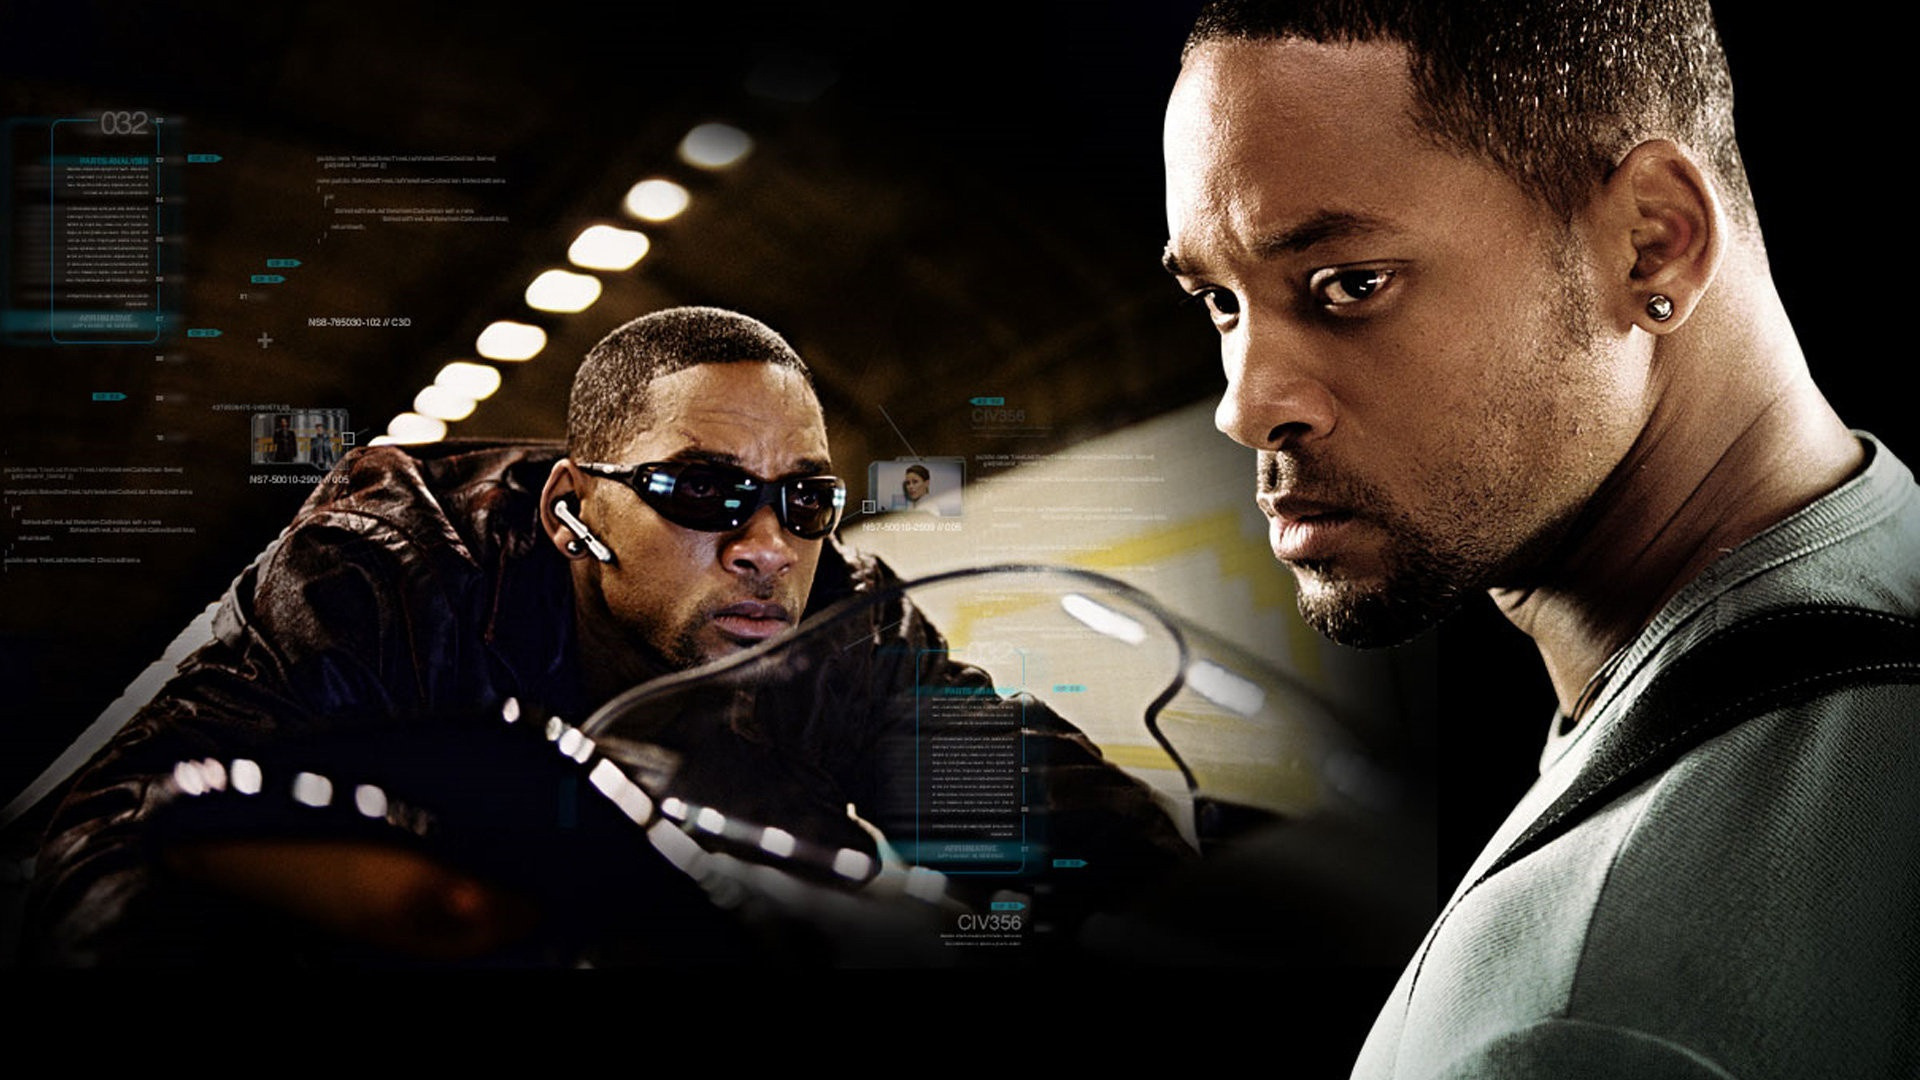 I Robot Will Smith Movie #4168796, 1920x1080 | All For Desktop